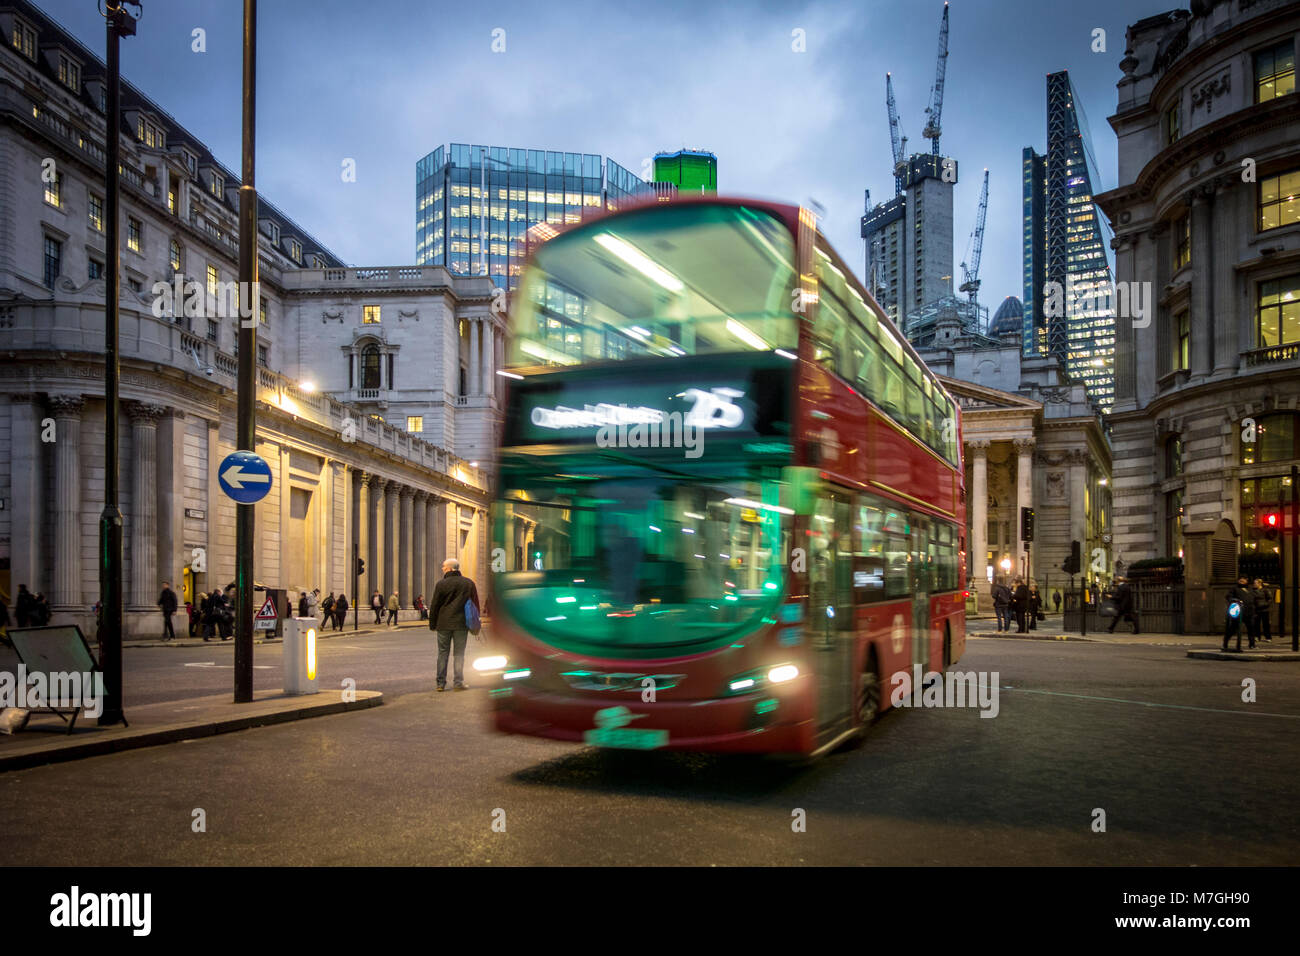 Red London bus on Bank junction at night with green traffic light illuminating front - Stock Image